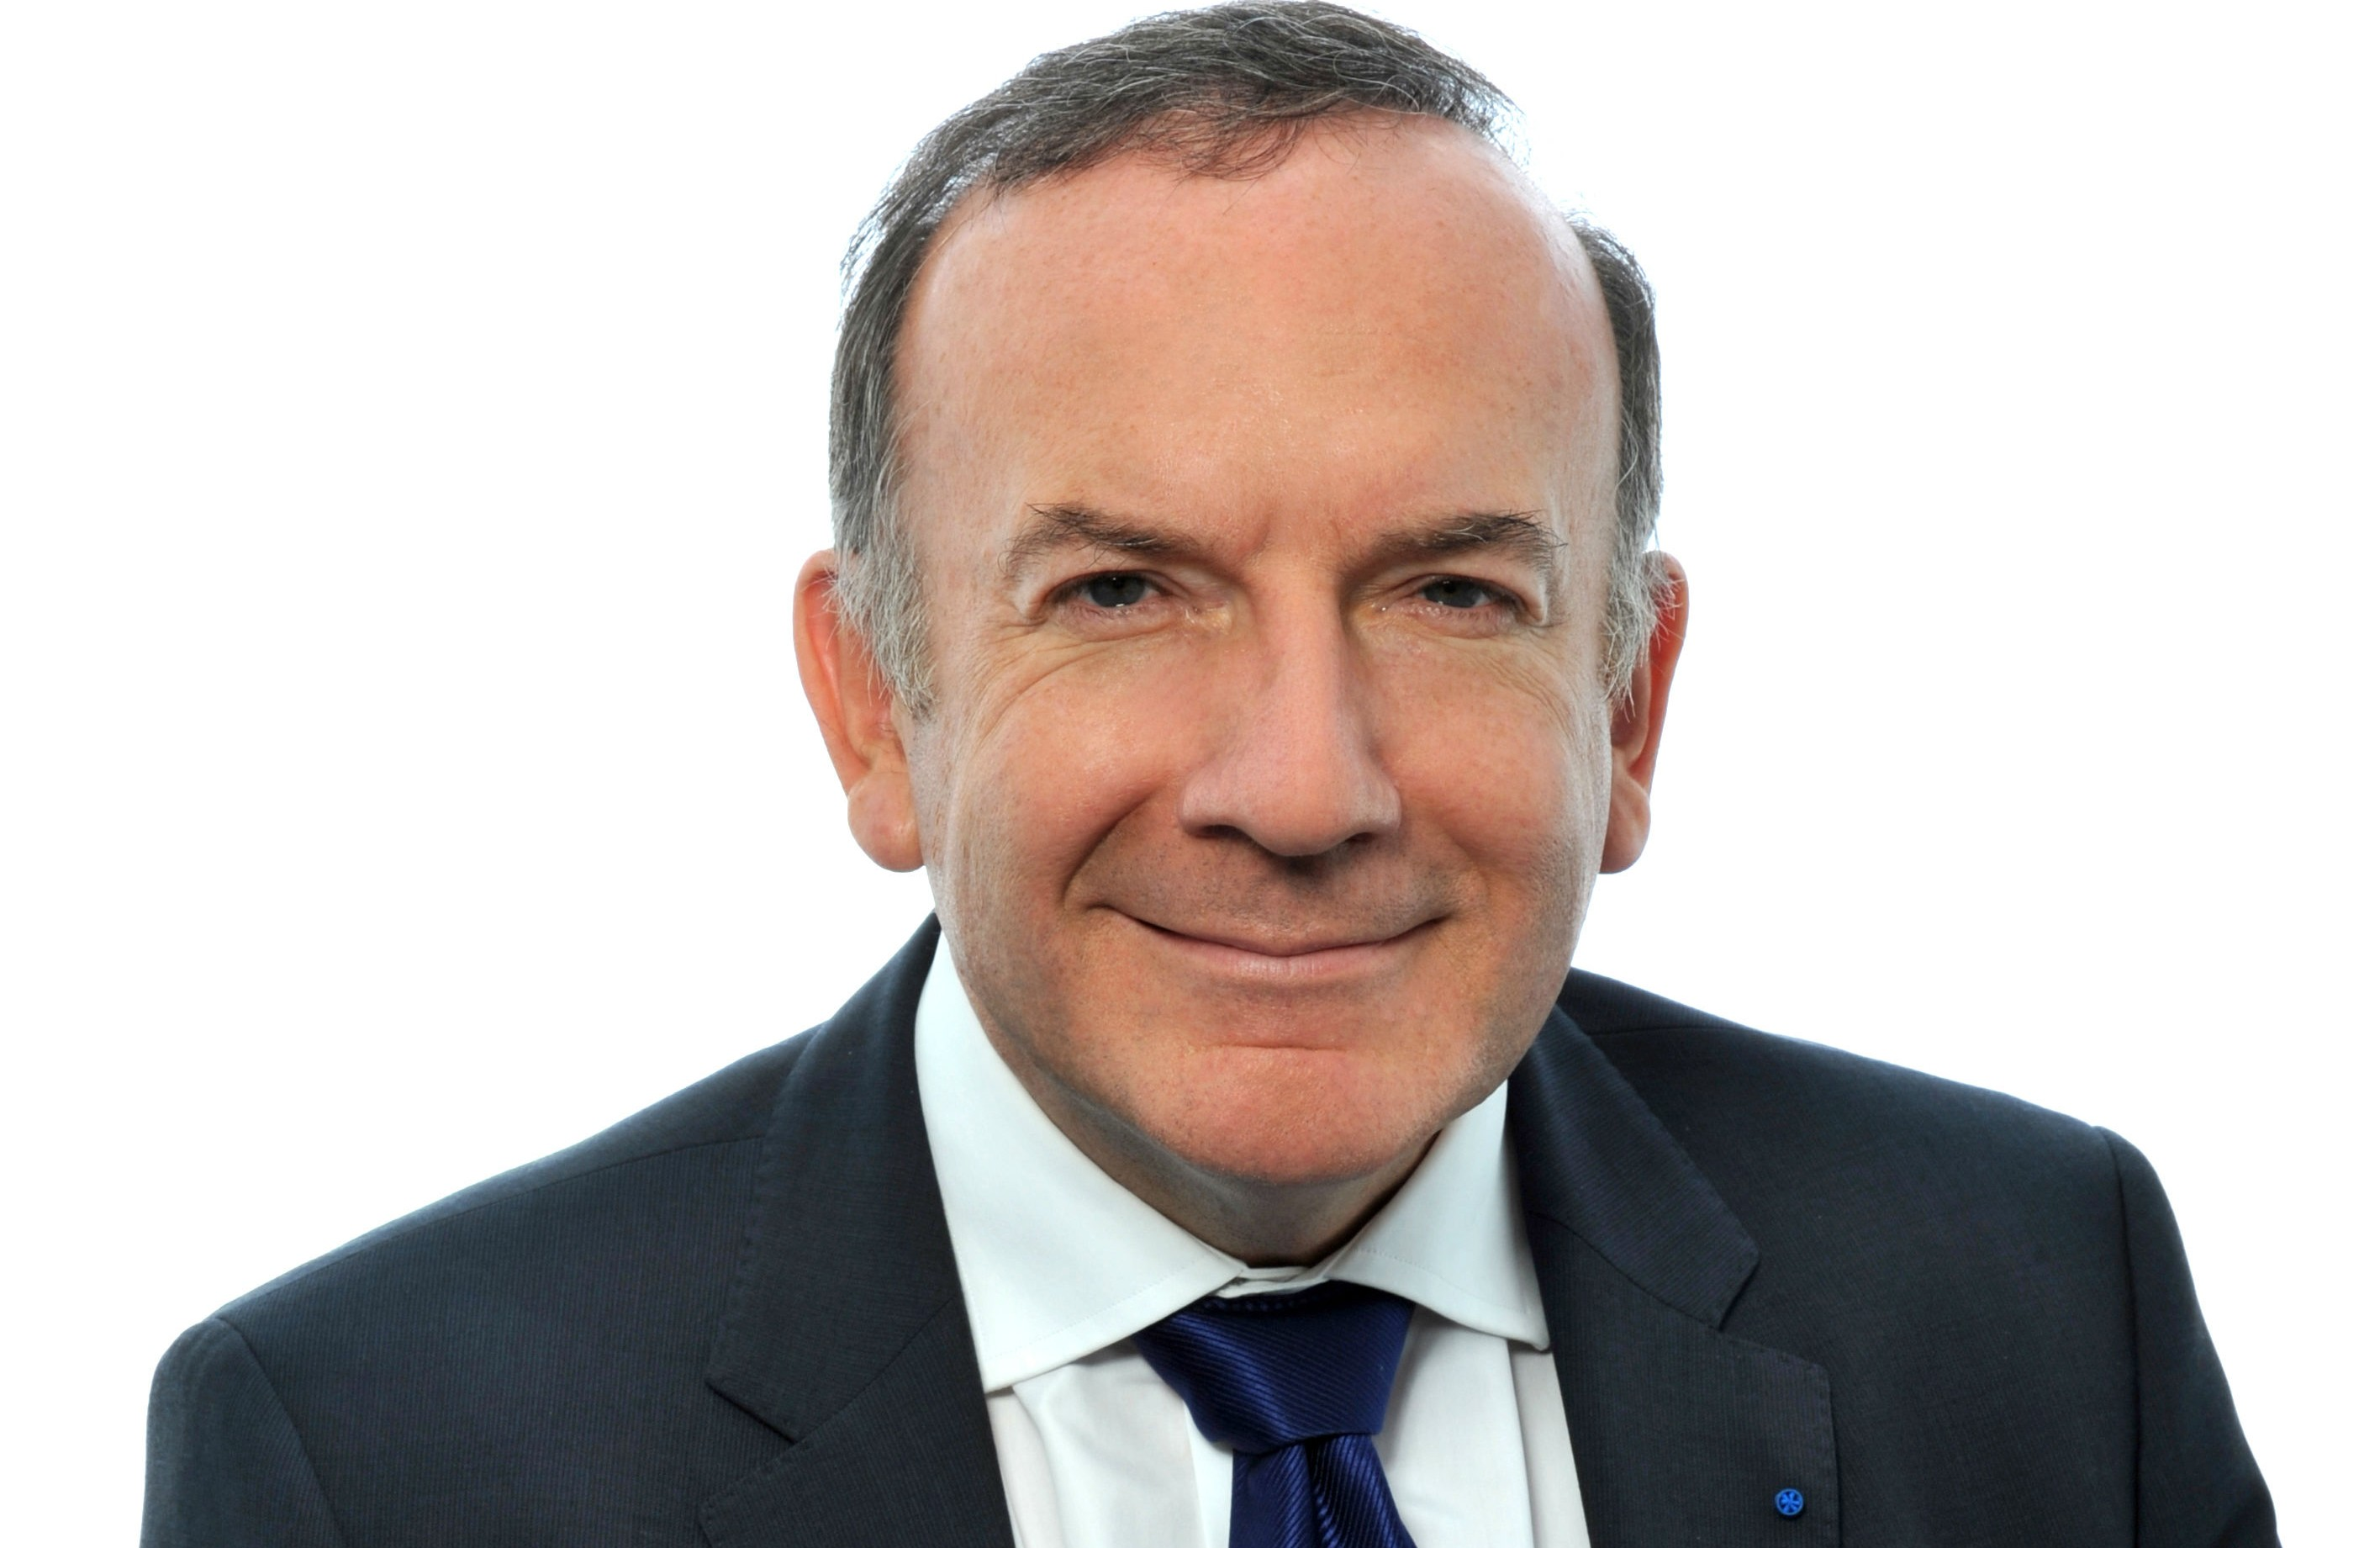 Pierre Gattaz is the new President of BusinessEurope